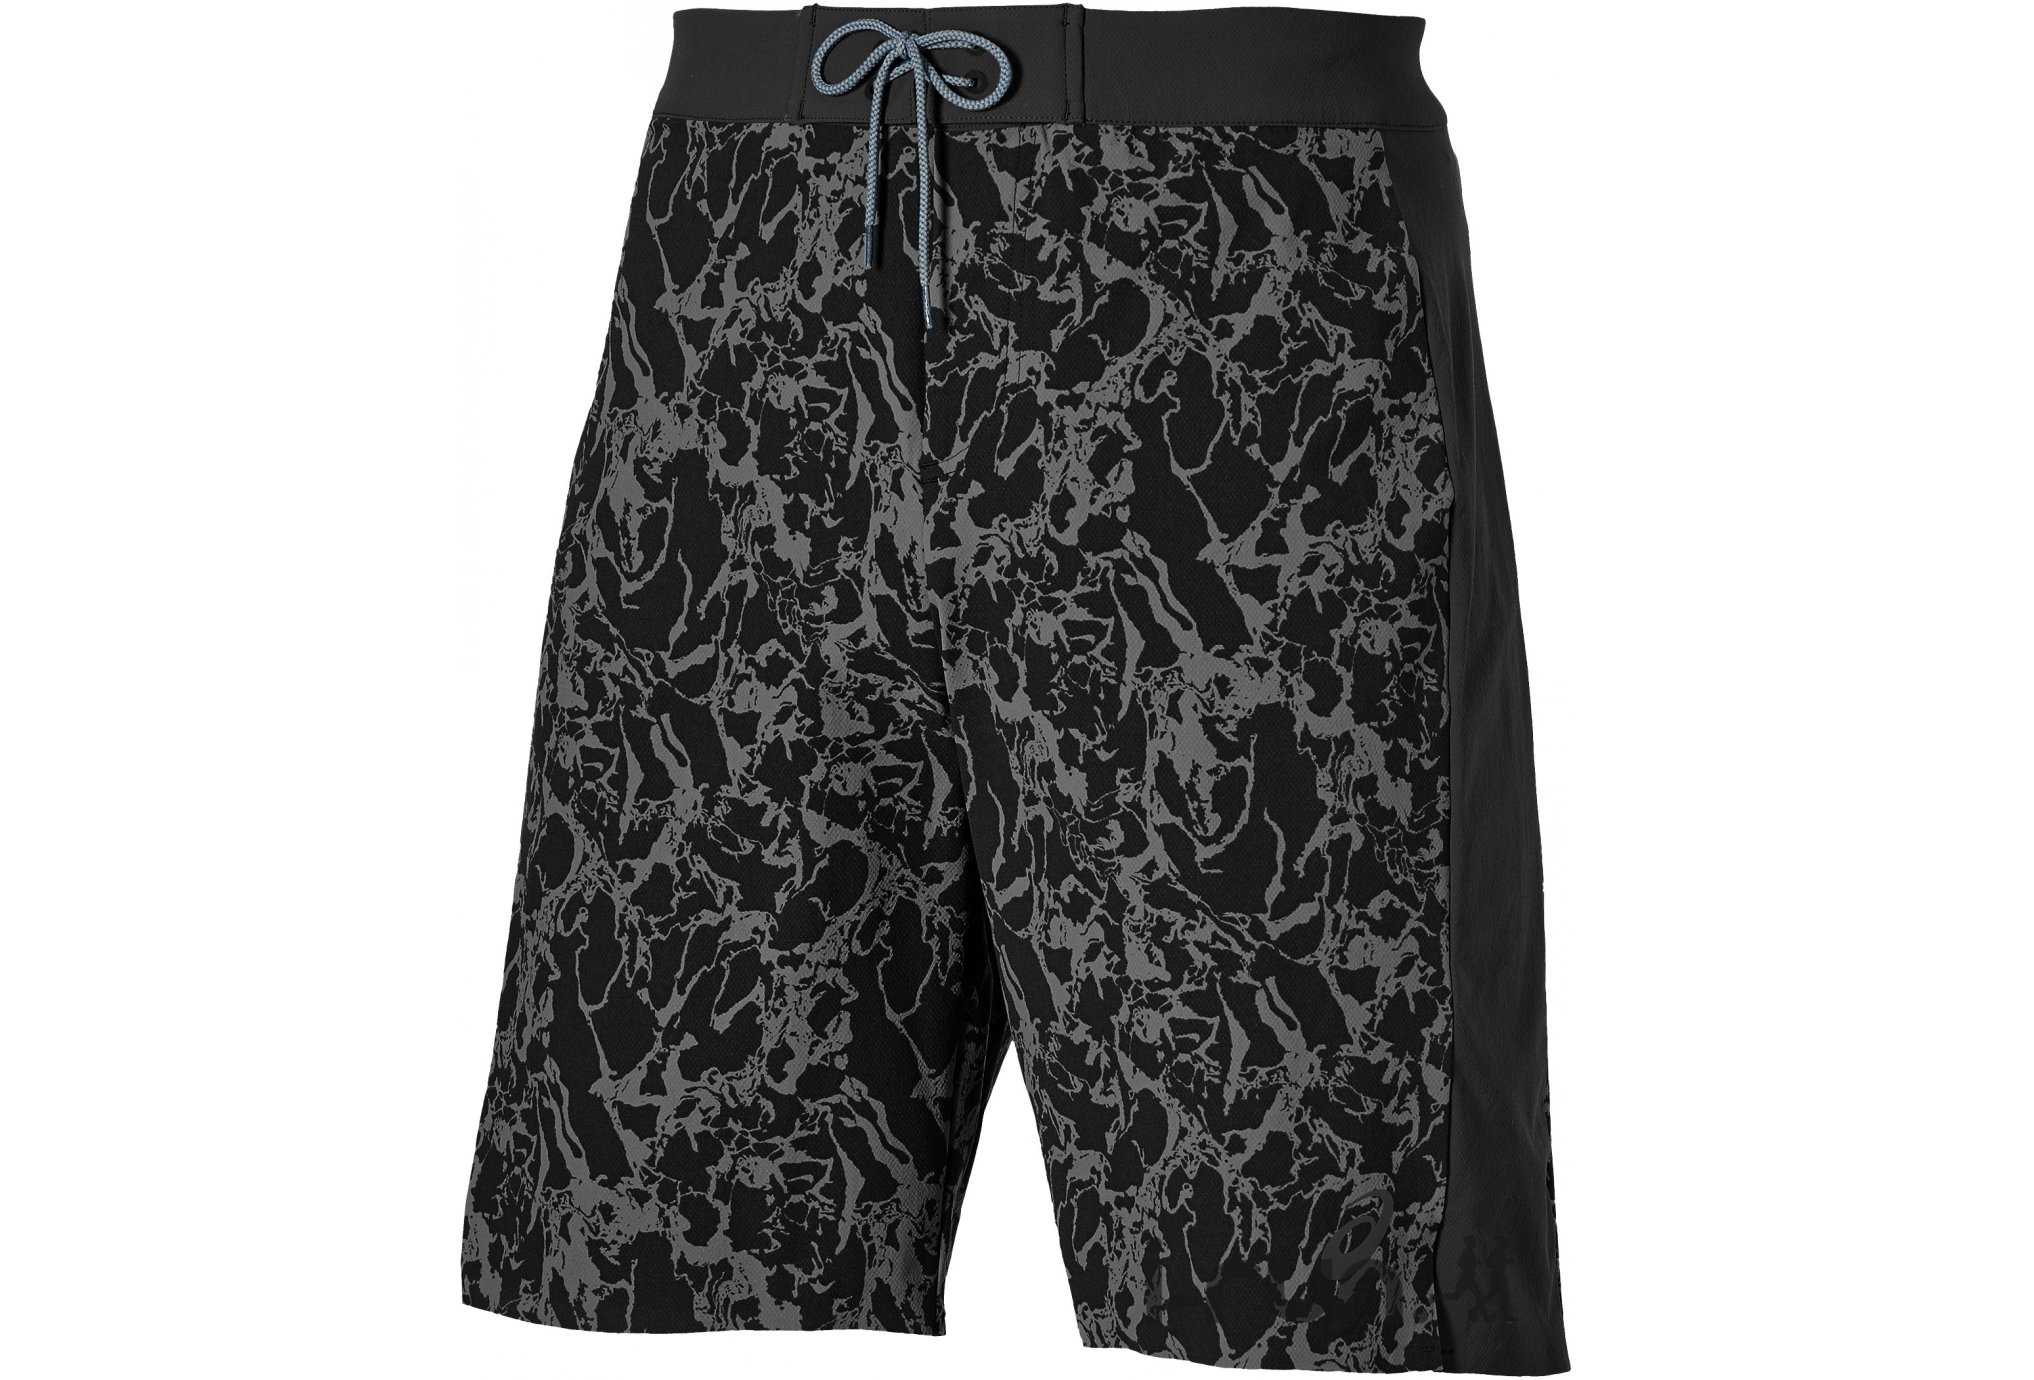 Asics Board Short 10inch M vêtement running homme